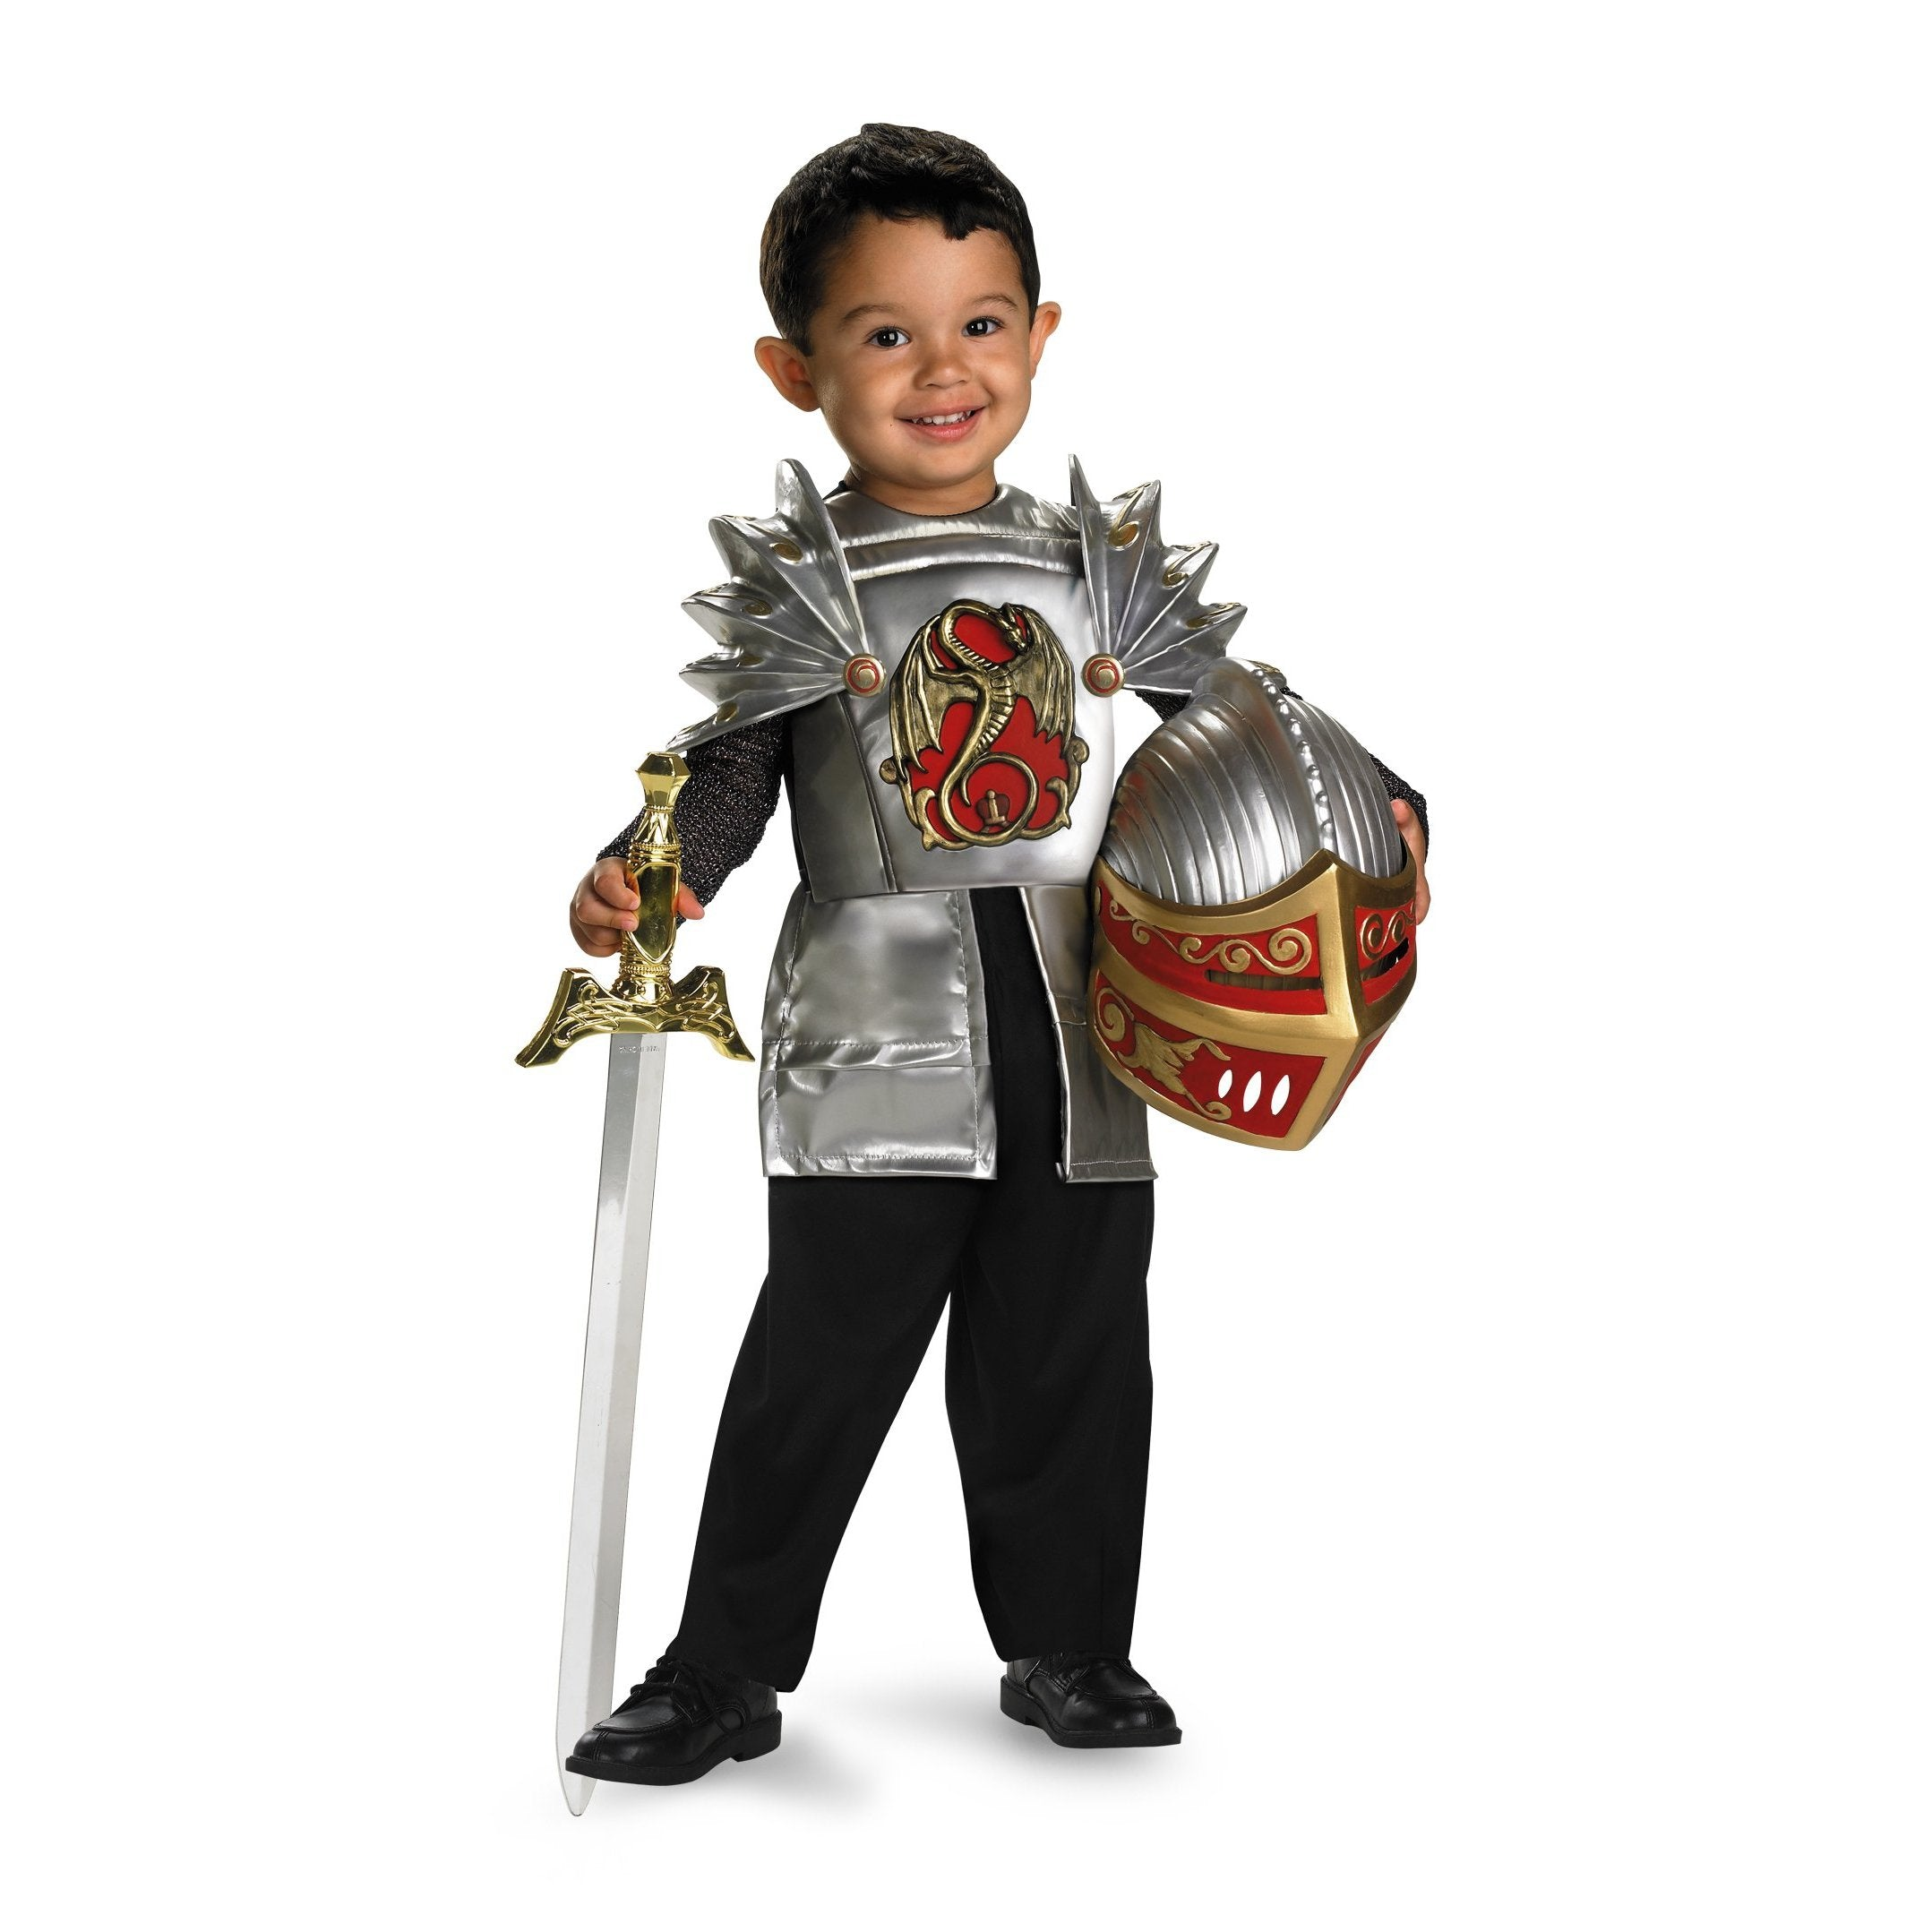 Toddler Costume - Knight of the Dragon Toddler Costume - Party Savers